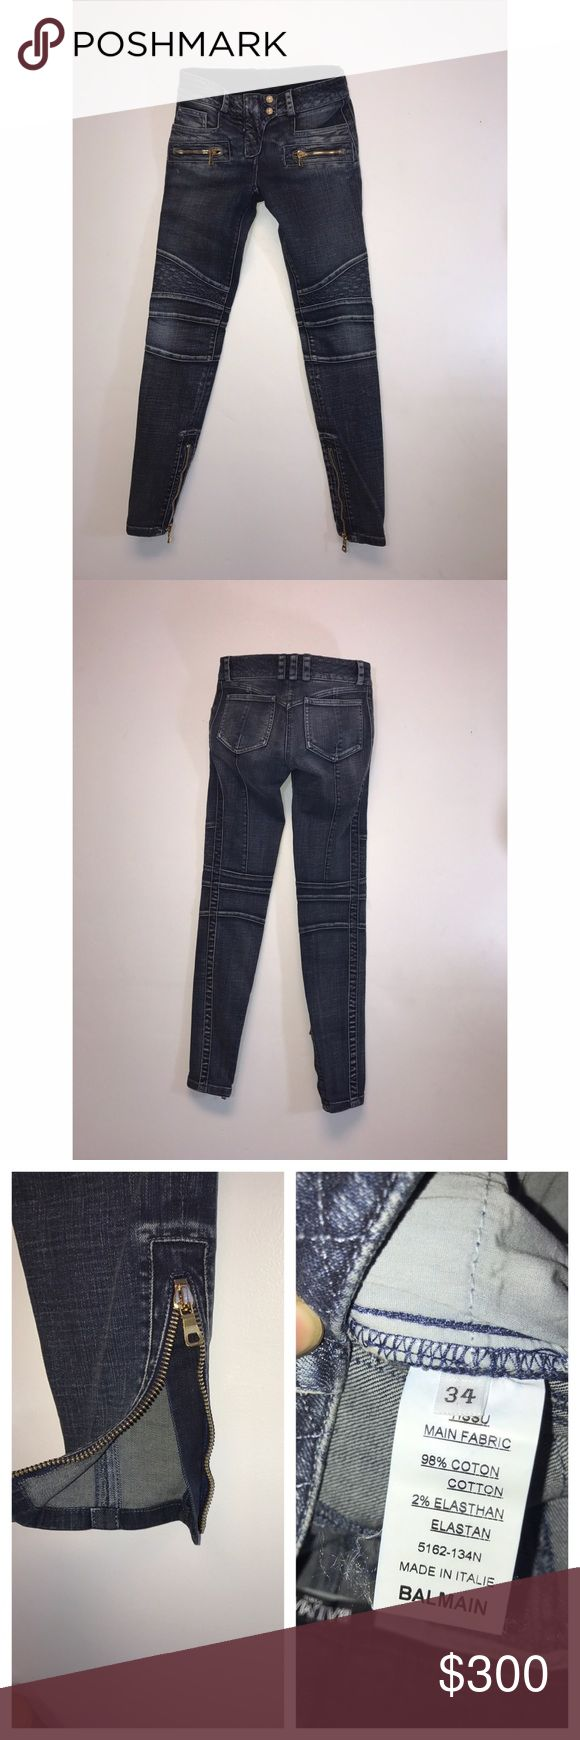 Balmain Paris Skinny Moto Women's Jeans    Sz: 34 Guaranteed authentic item. And a must have item! We are unable to model items or take sales to PP. Willing to negotiate through the offer button. No trades. Balmain Jeans Skinny